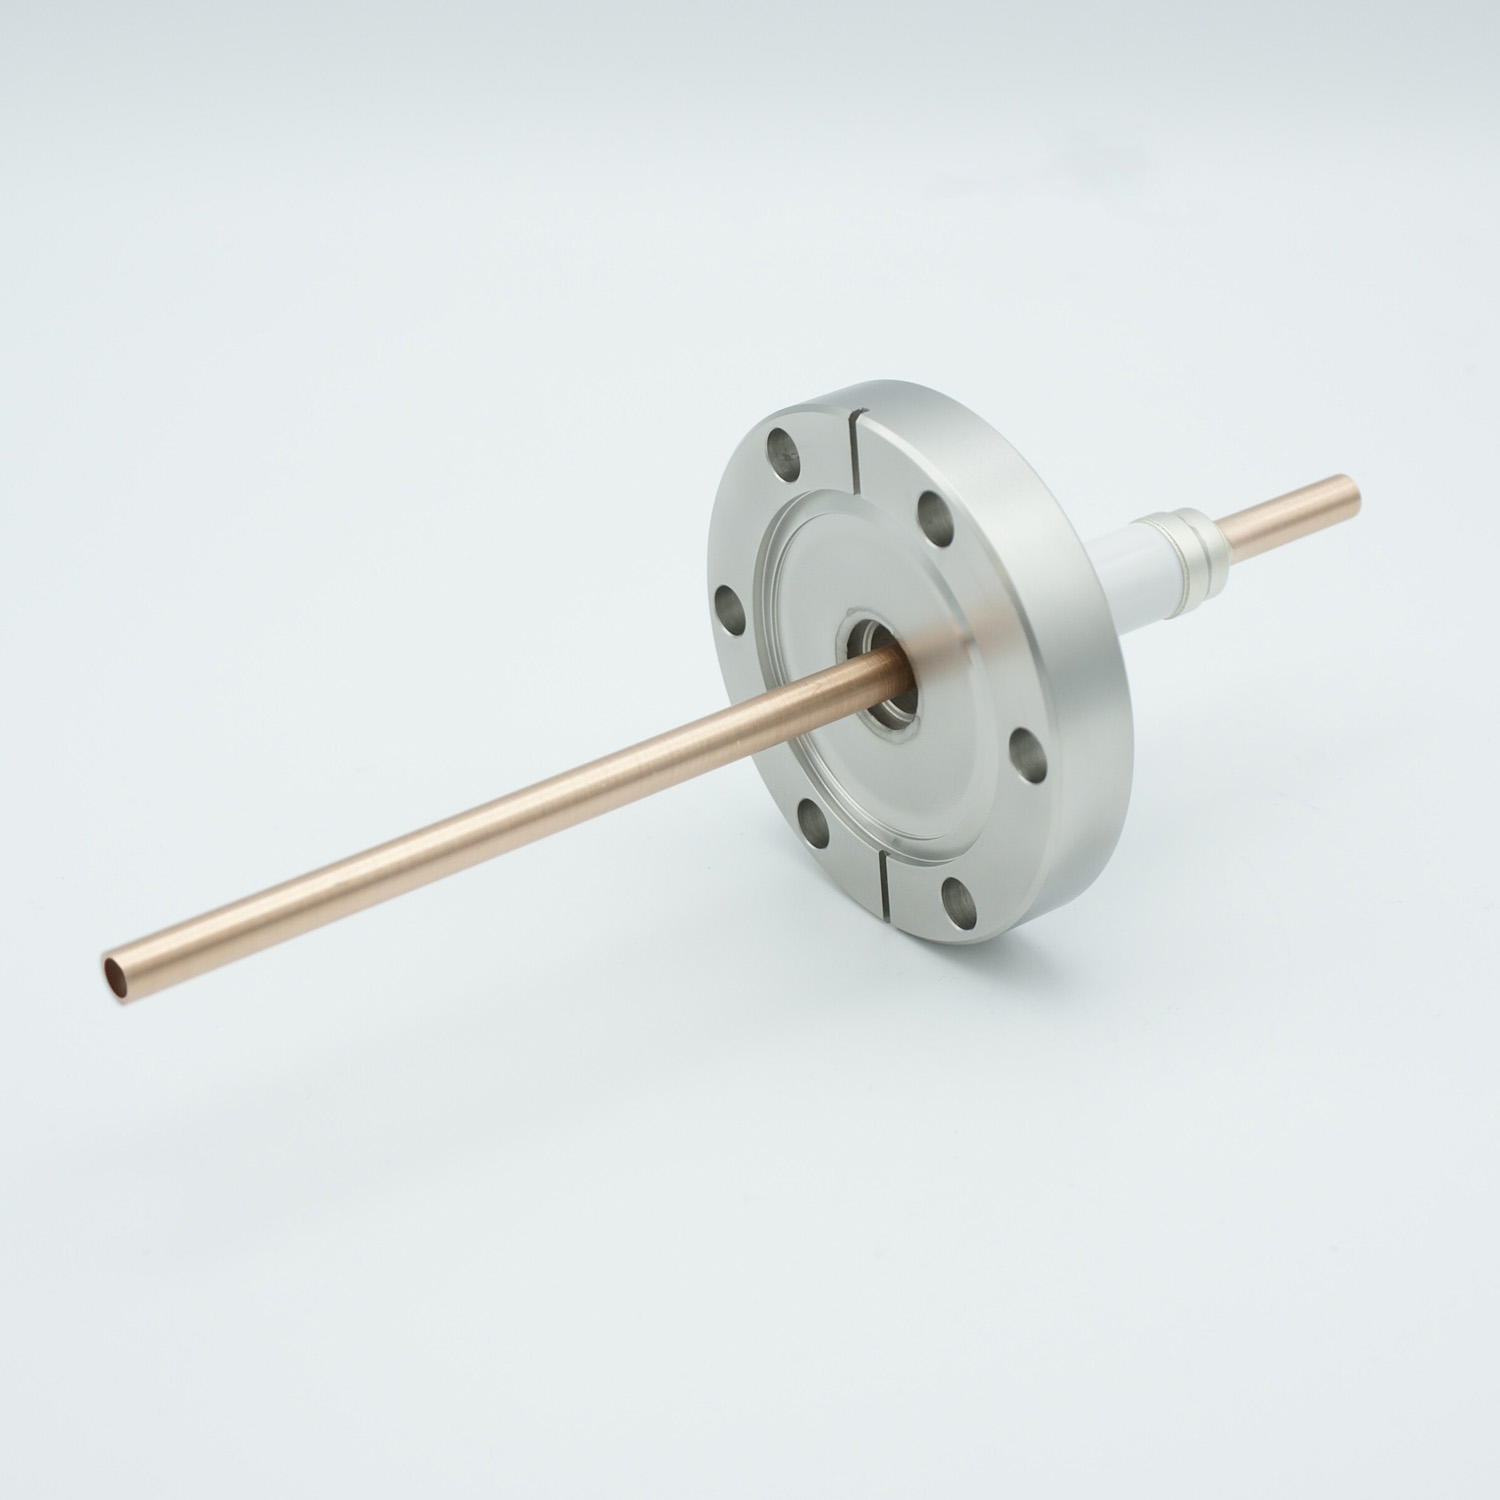 1 pin water cooled feedthrough 5000Volt DC Nickel conductor, DN40CF flange